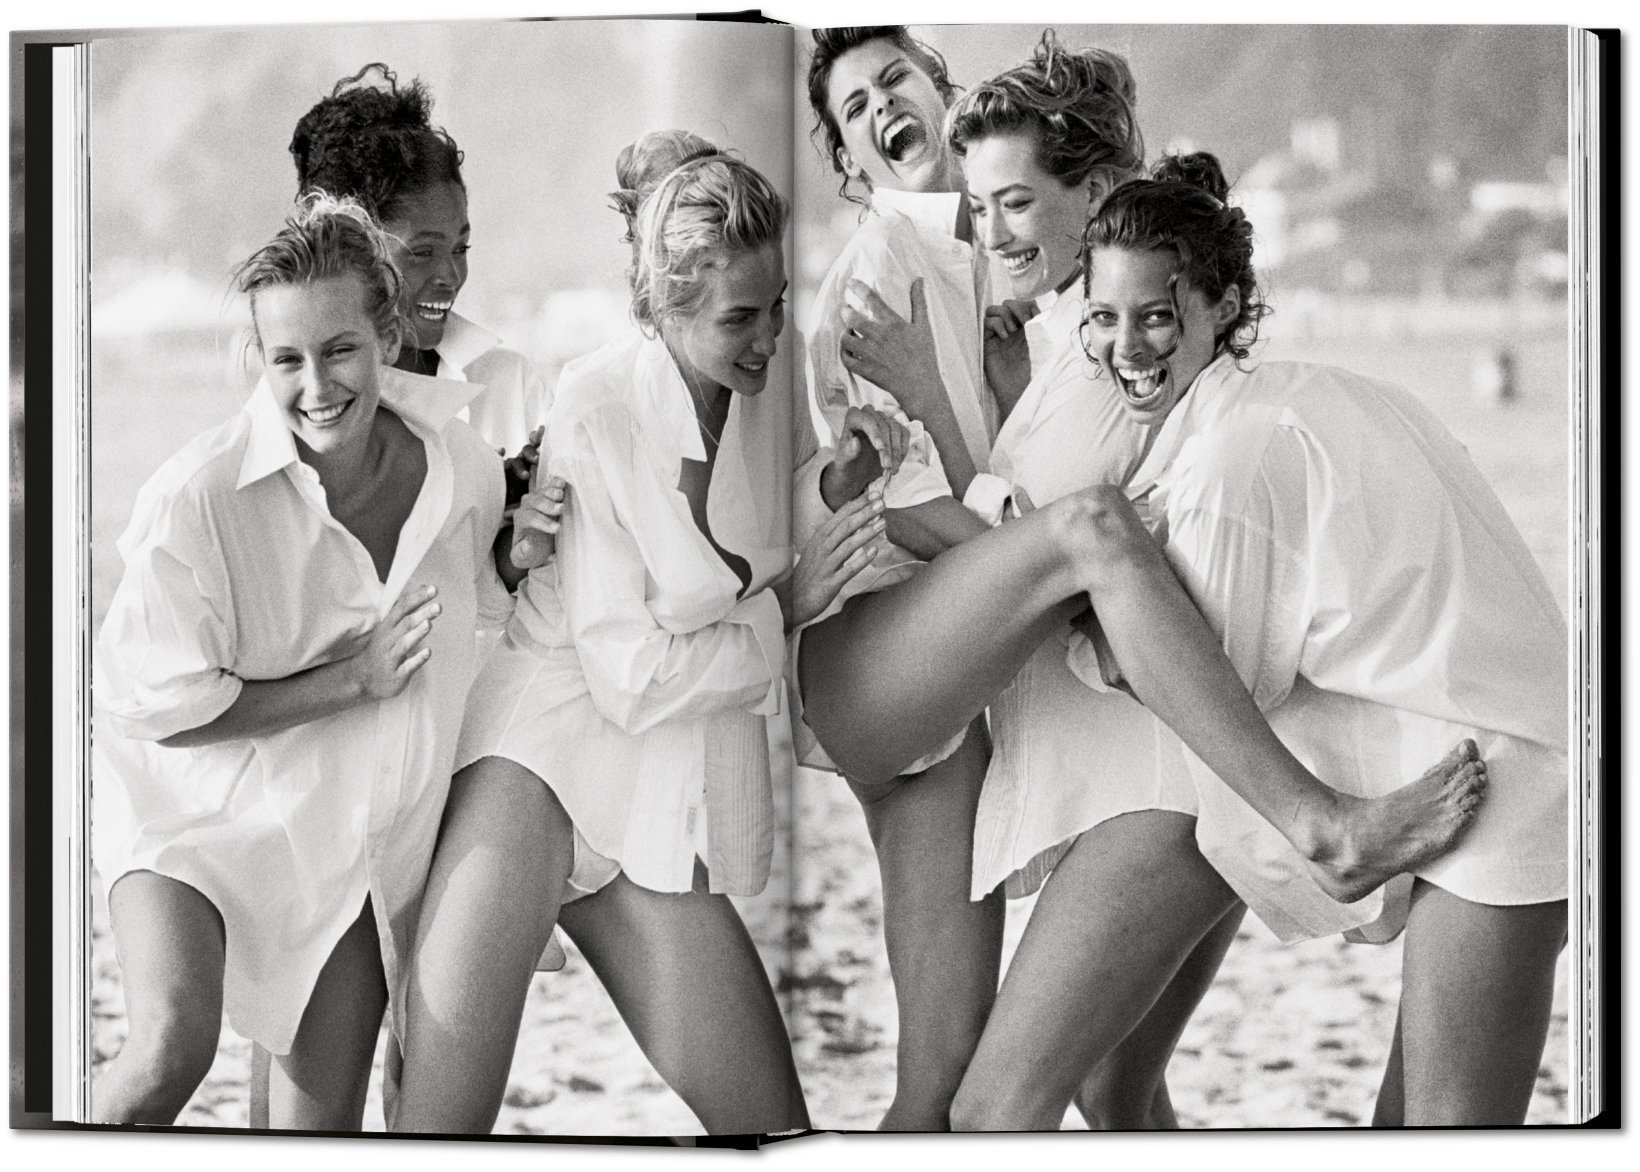 Buch, Peter Lindbergh on Fashion Photography - TASCHEN - Bild 2